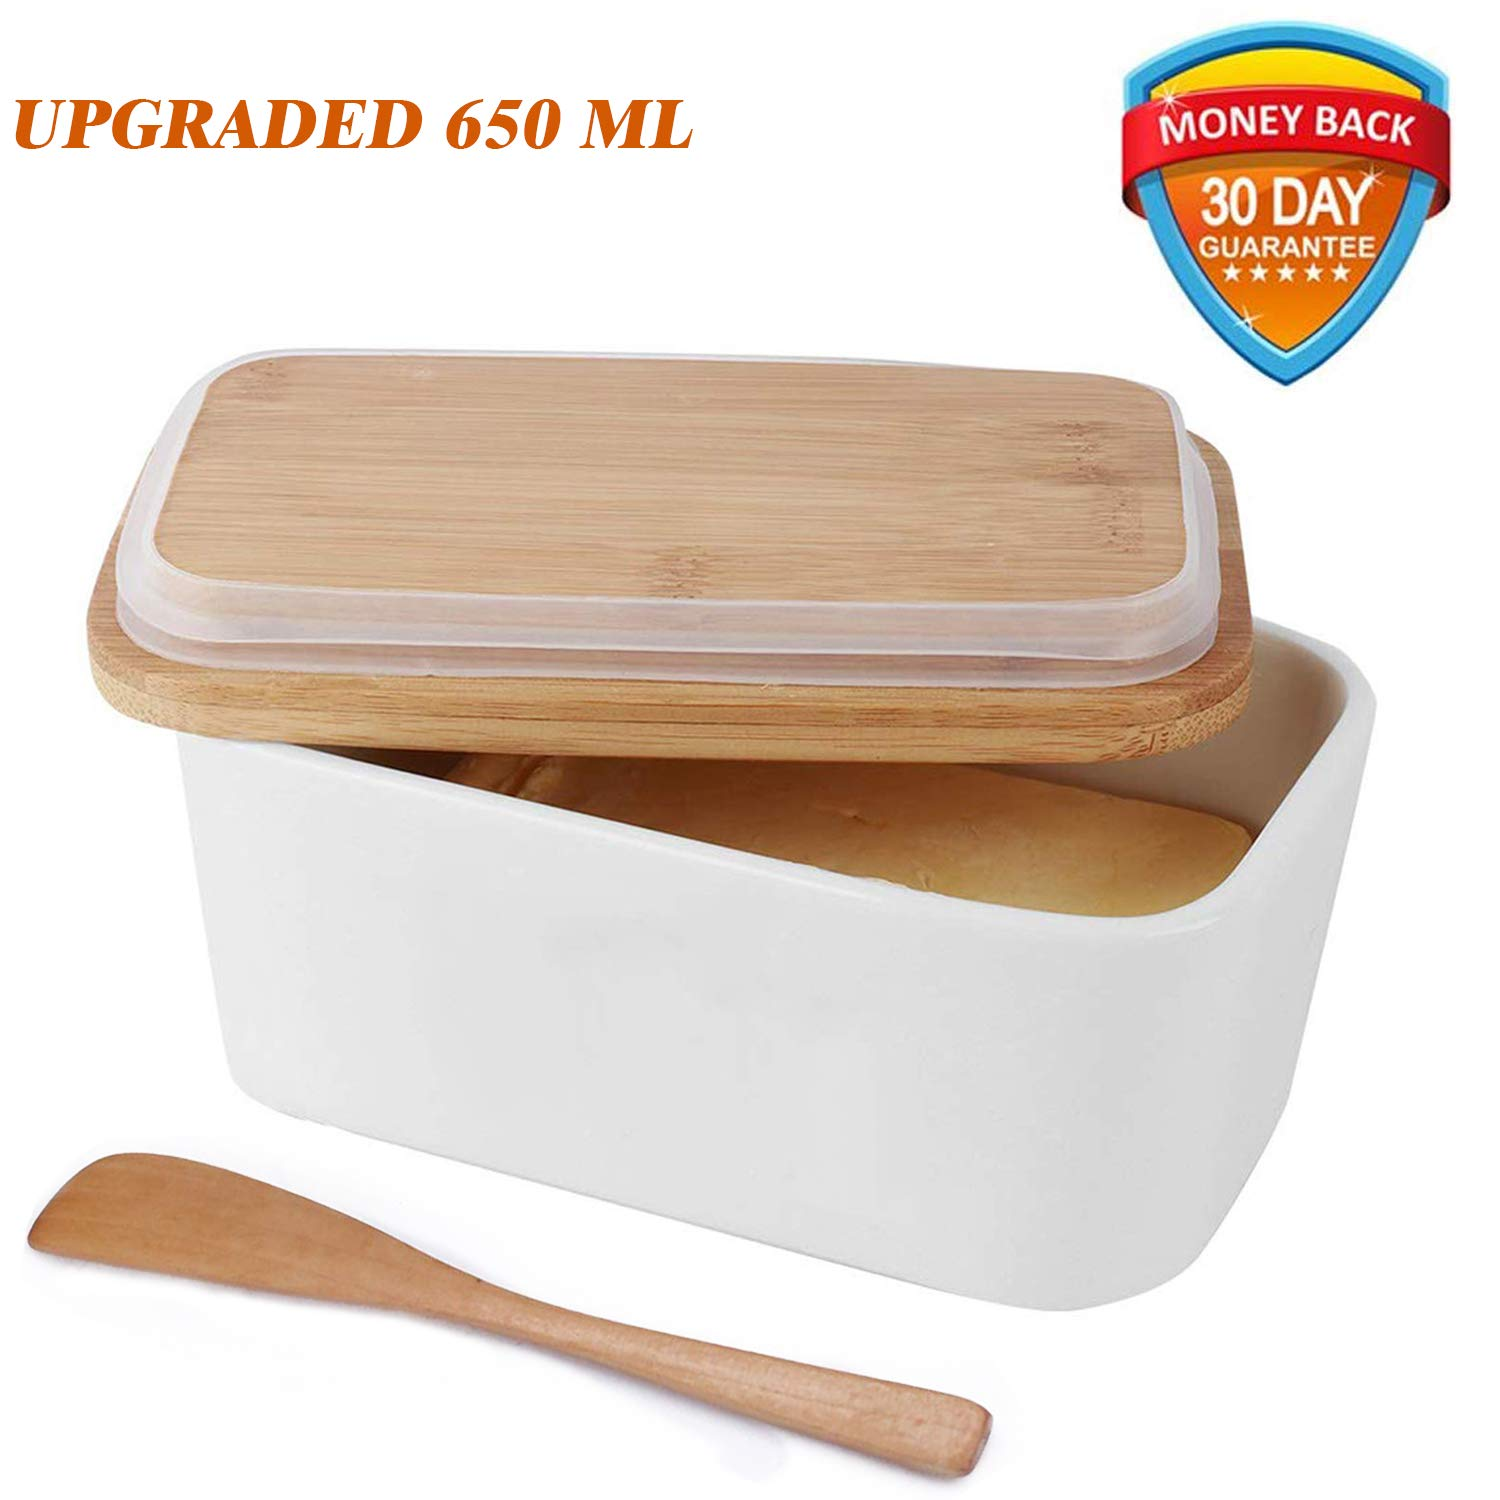 Butter Dish with Lid,Vermida Porcelain Butter Keeper with Bamboo Lid and and Knife,White Ceramic Butter Holder with Bamboo Knife,Butter Boat with Lid for both East and West Coast Butters(650ML)